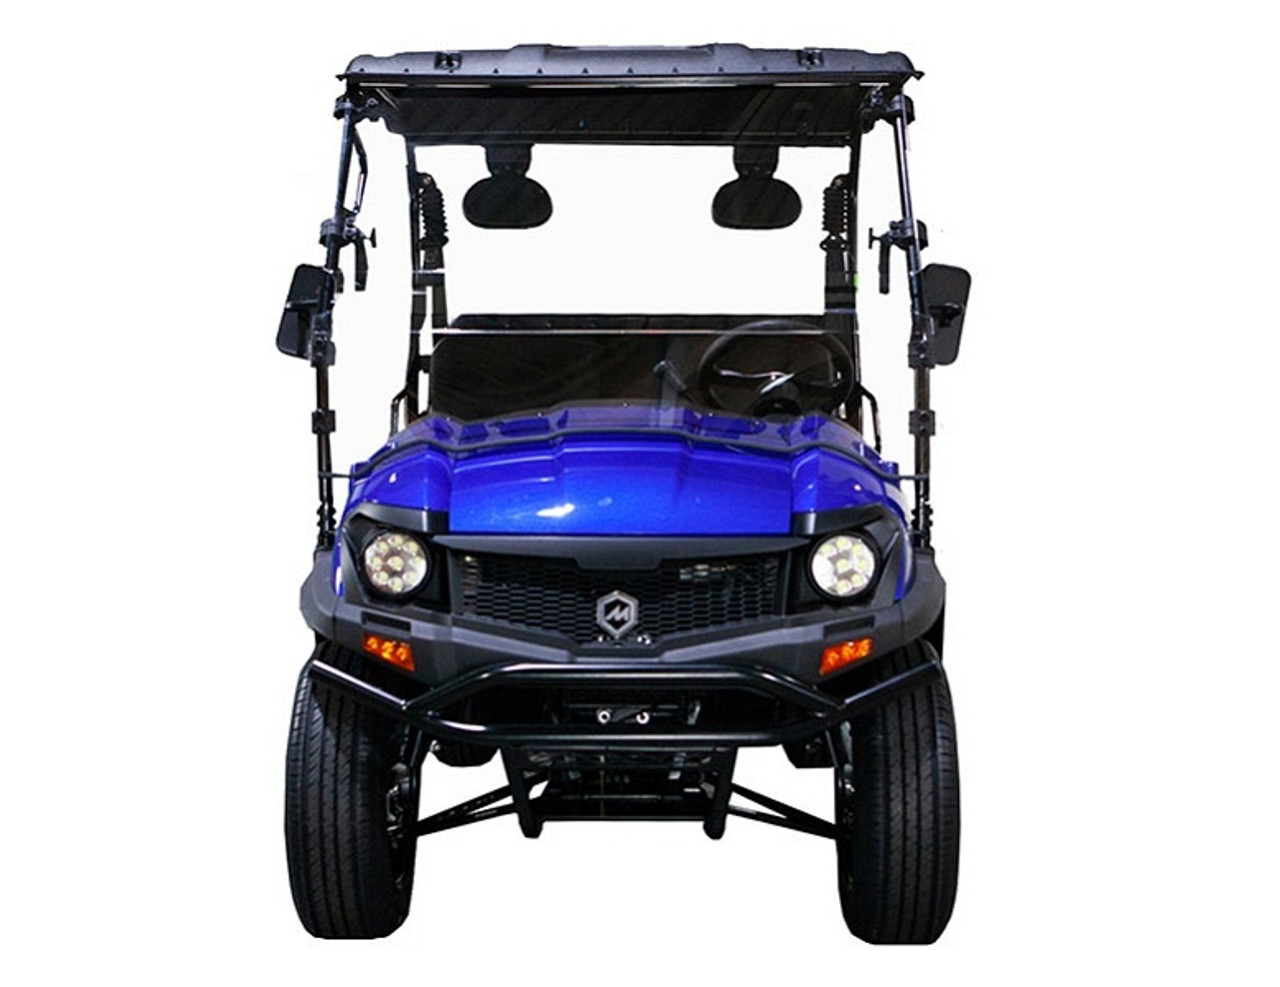 BLUE - MASSIMO BUCK 200X UTV, 177cc Four-Stroke, Single Cylinder - Fully Assembled and Tested